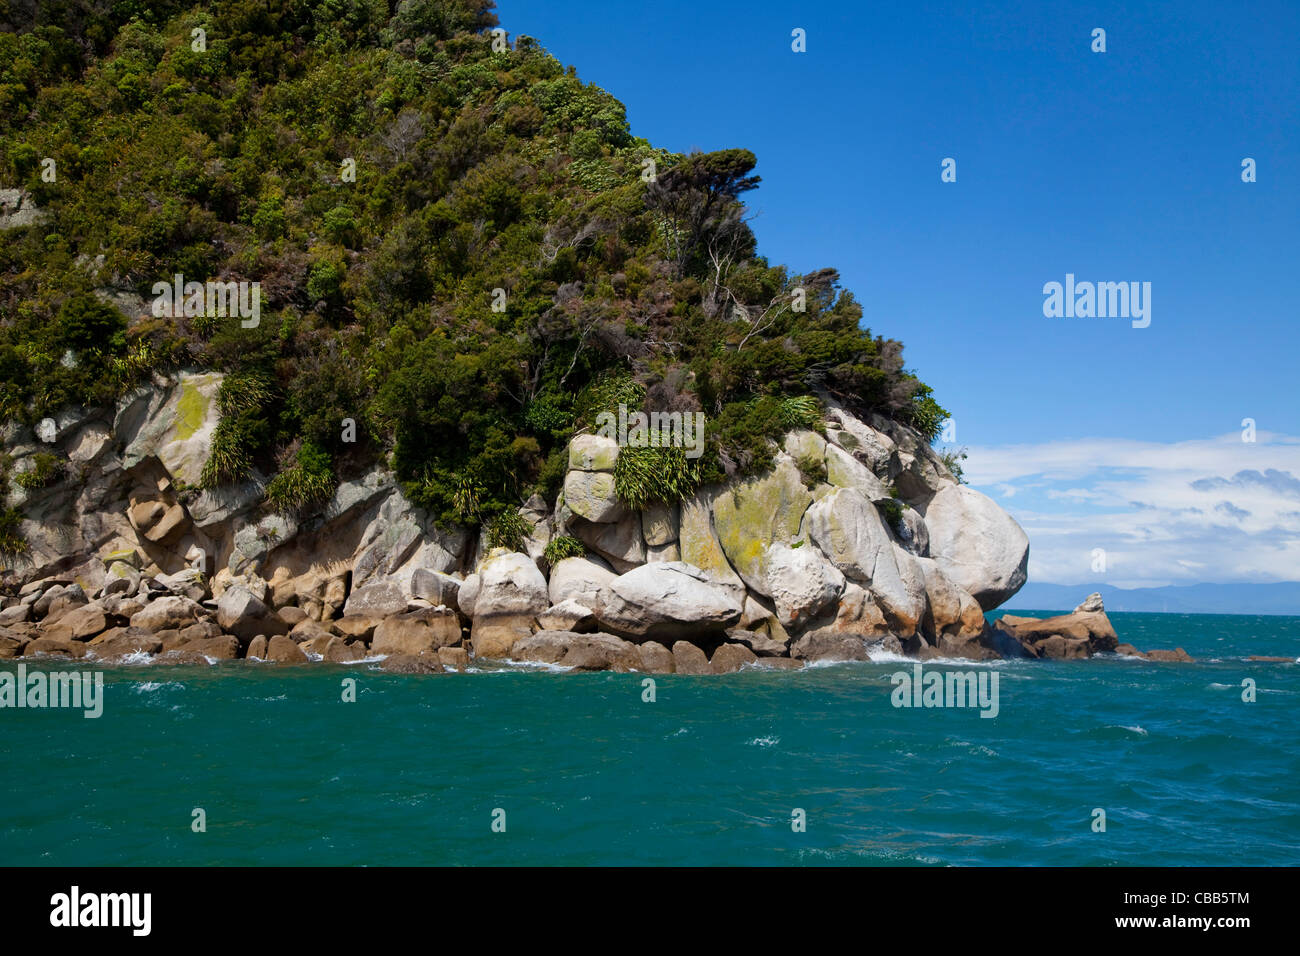 Tonga Island, Kaiteriteri Coast, Abel Tasman National Park, South Island, New Zealand - Stock Image